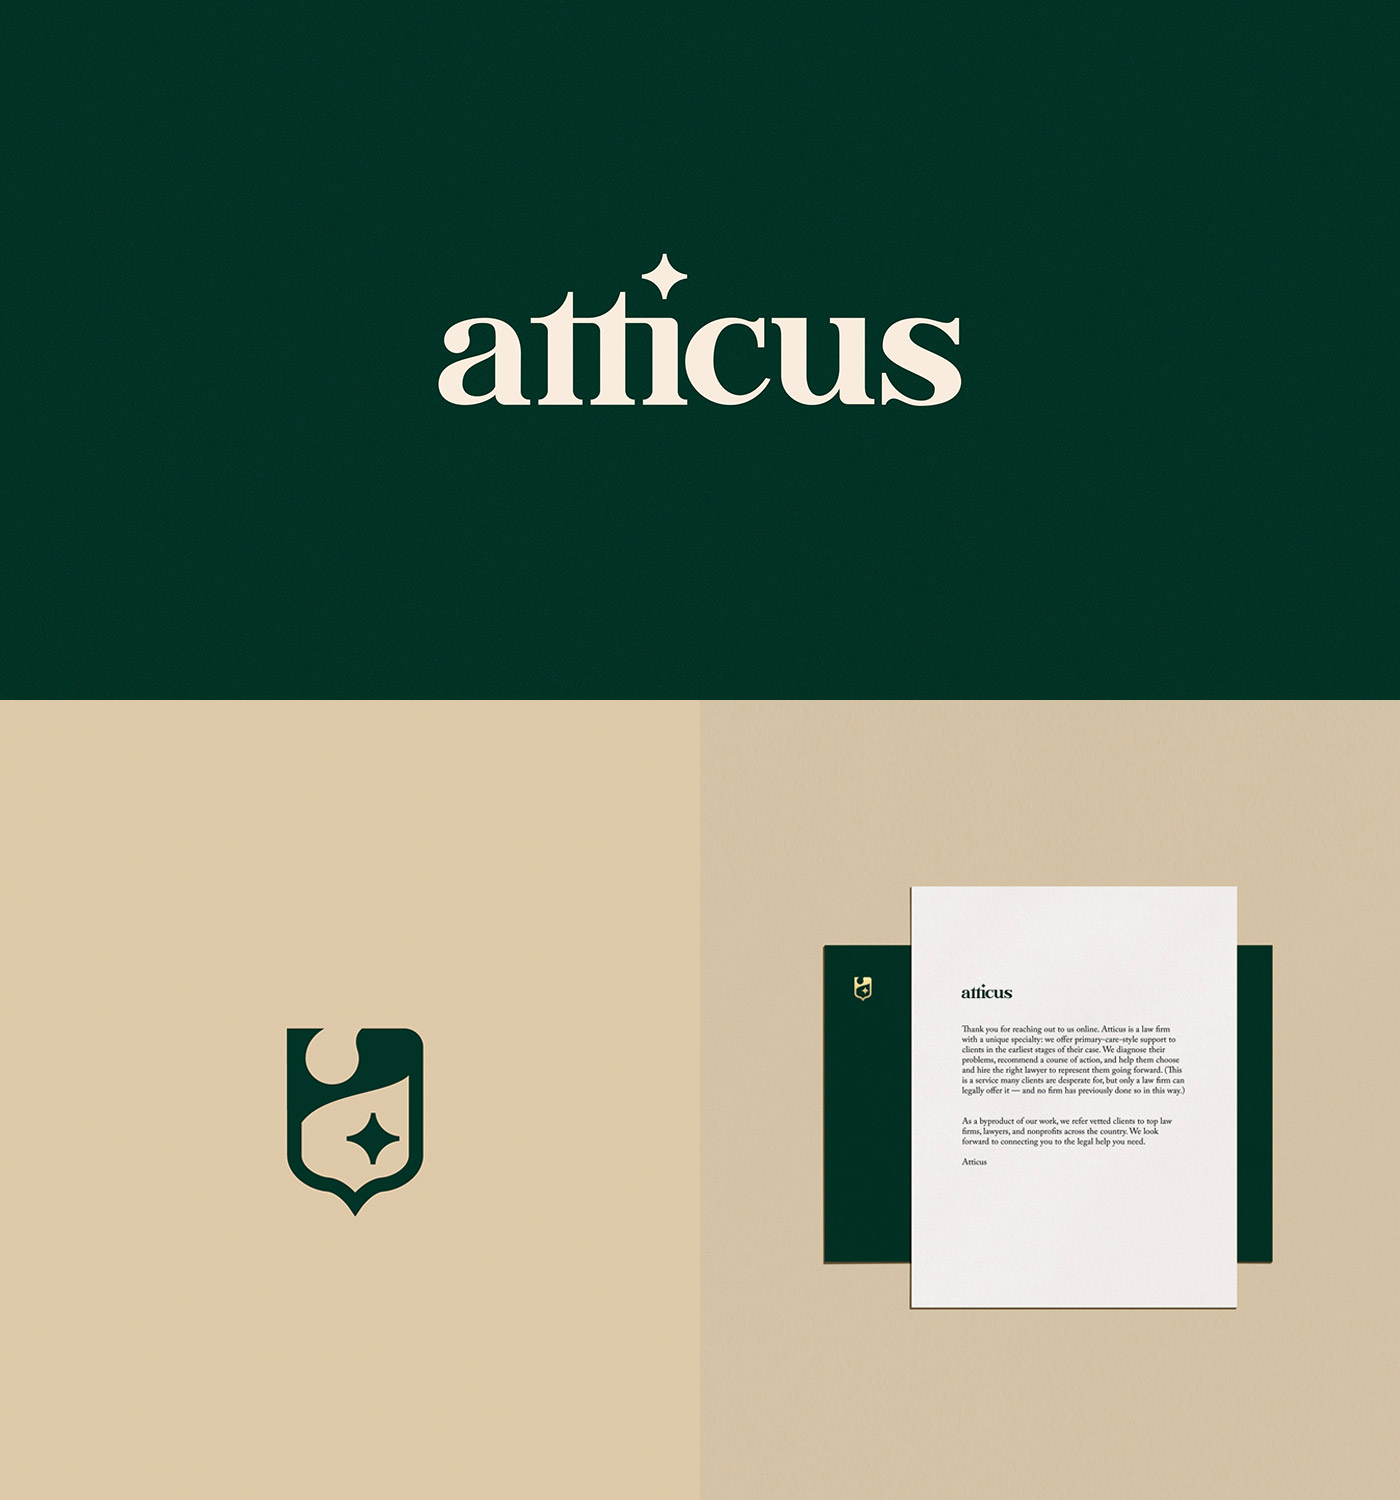 Atticus Designed by We Are Lazaris